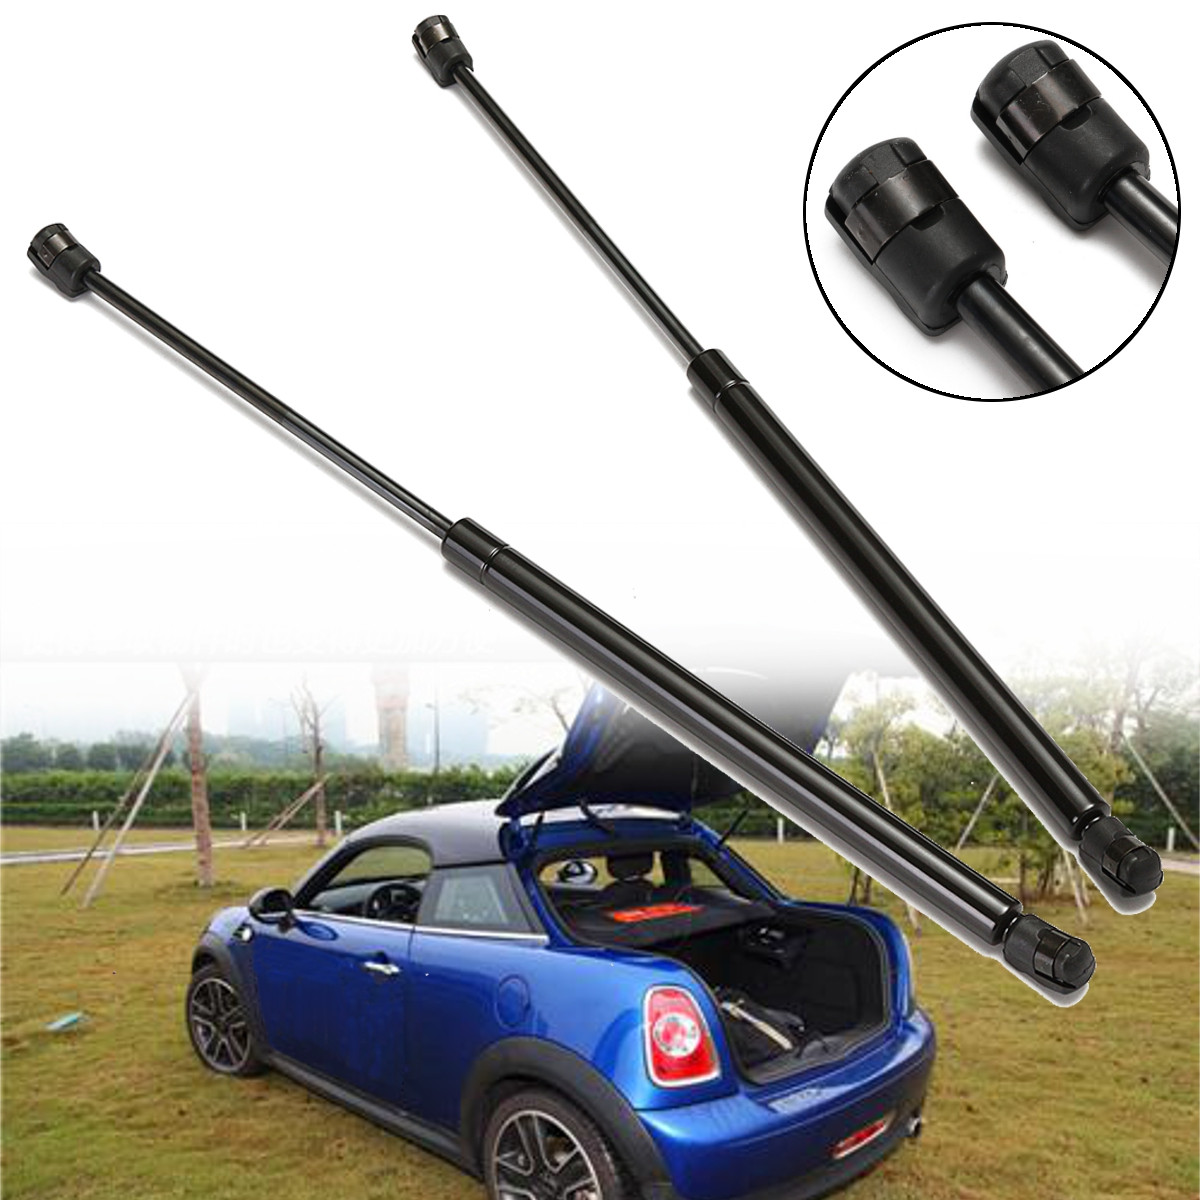 2Pcs Car Rear Tailgate Trunk Lid Gas Lift Supports For BMW for Mini Cooper 2002-2008 52CM 416268012582Pcs Car Rear Tailgate Trunk Lid Gas Lift Supports For BMW for Mini Cooper 2002-2008 52CM 41626801258